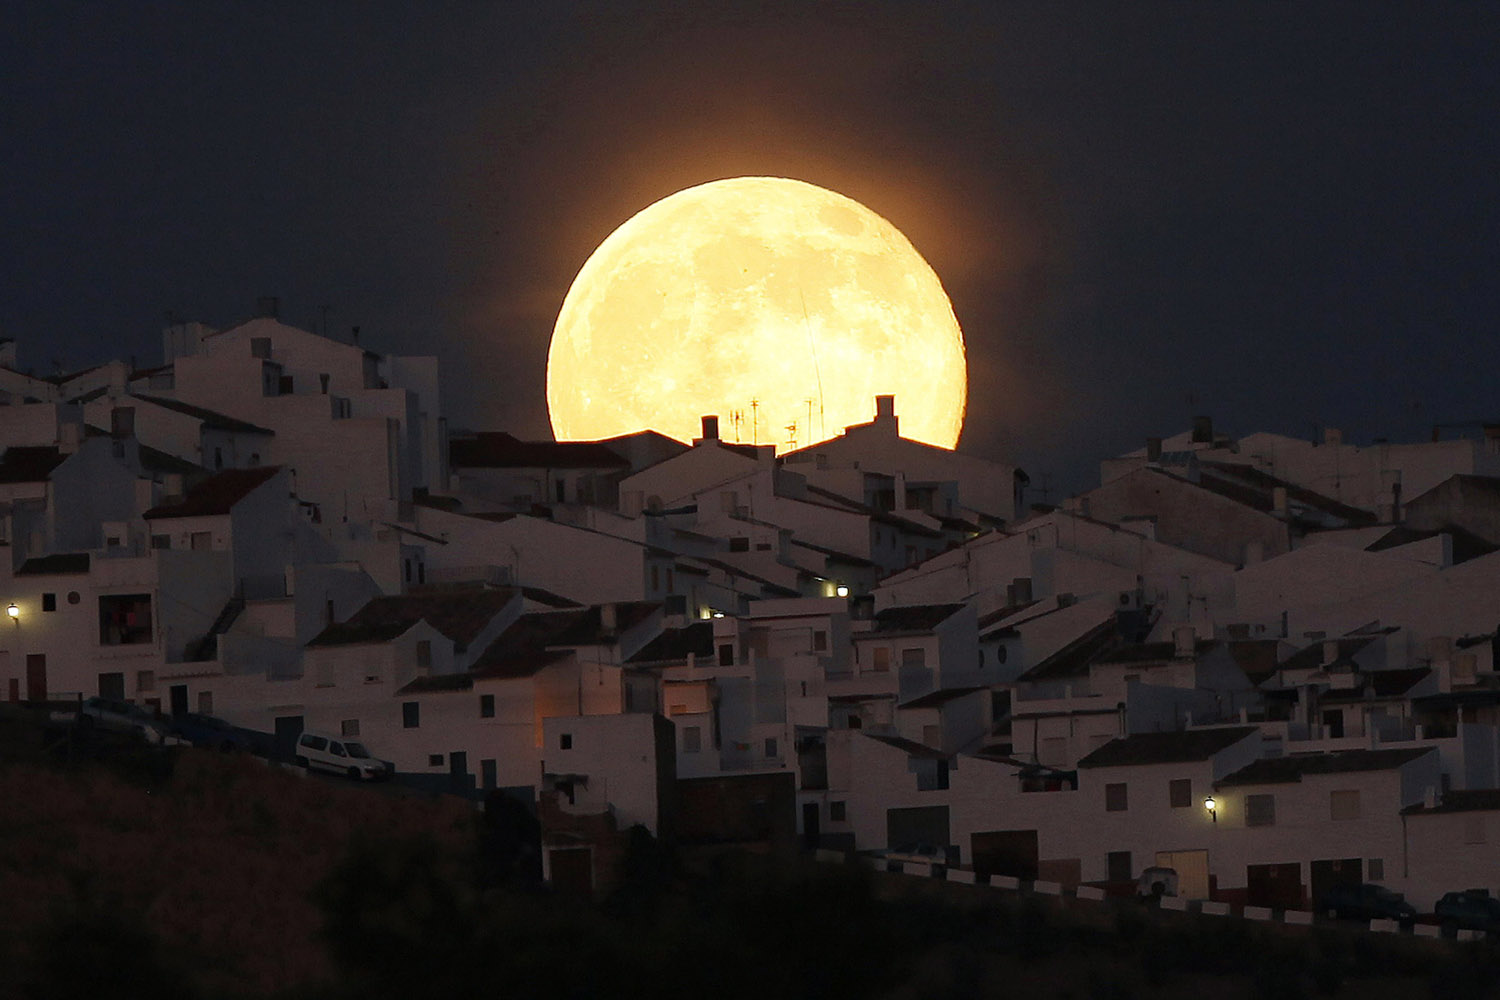 Jul. 12, 2014. The Supermoon rises over houses in Olvera, in the southern Spanish province of Cadiz. Occurring when a full moon or new moon coincides with the closest approach the moon makes to the Earth, the Supermoon results in a larger-than-usual appearance of the lunar disk.